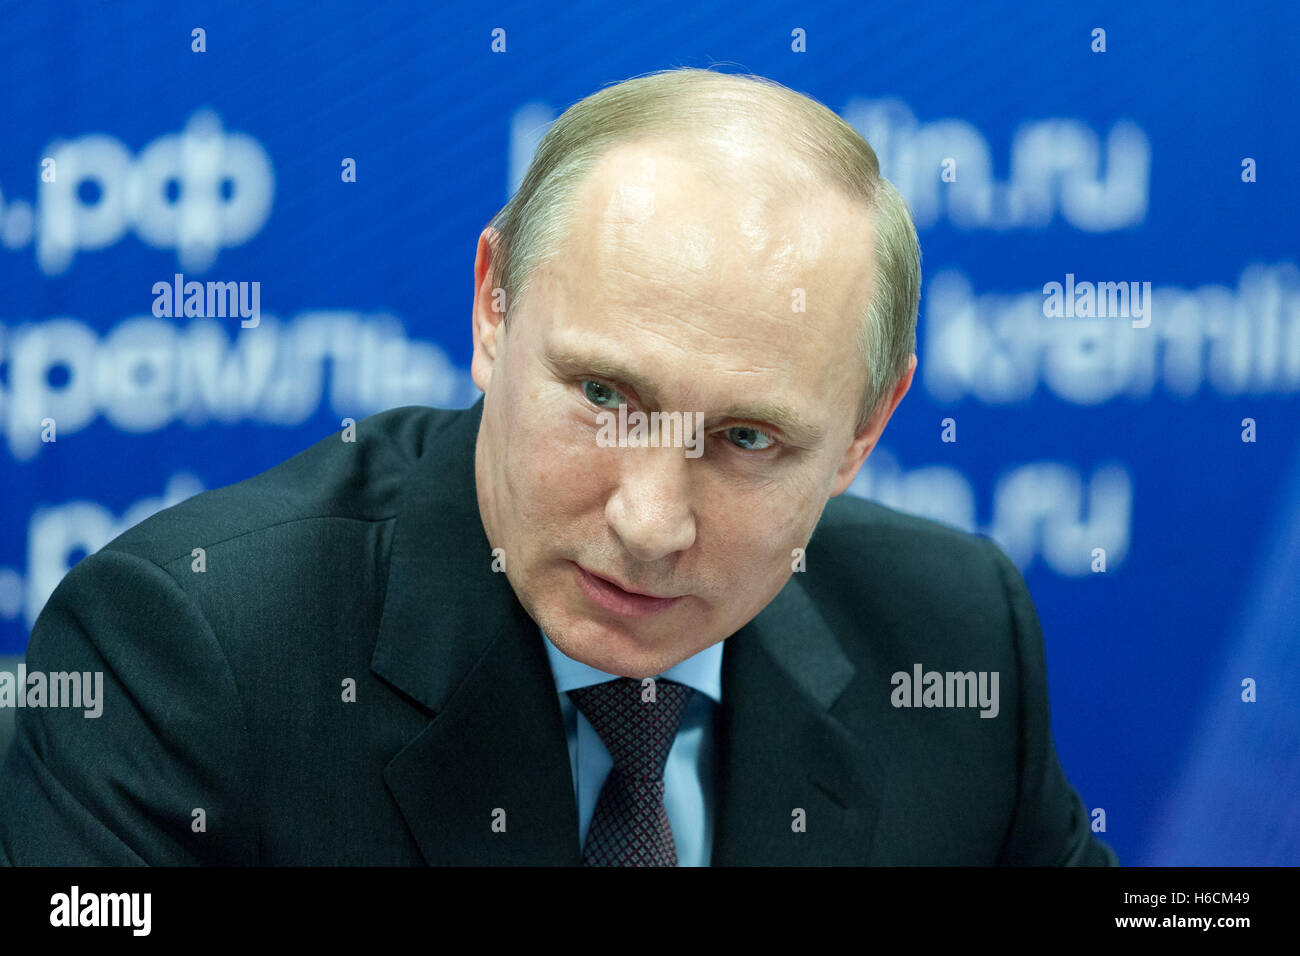 Saint Petersburg, Russia - November 22 2013.  President of the Russian Federation Vladimir  Putin during his visit - Stock Image